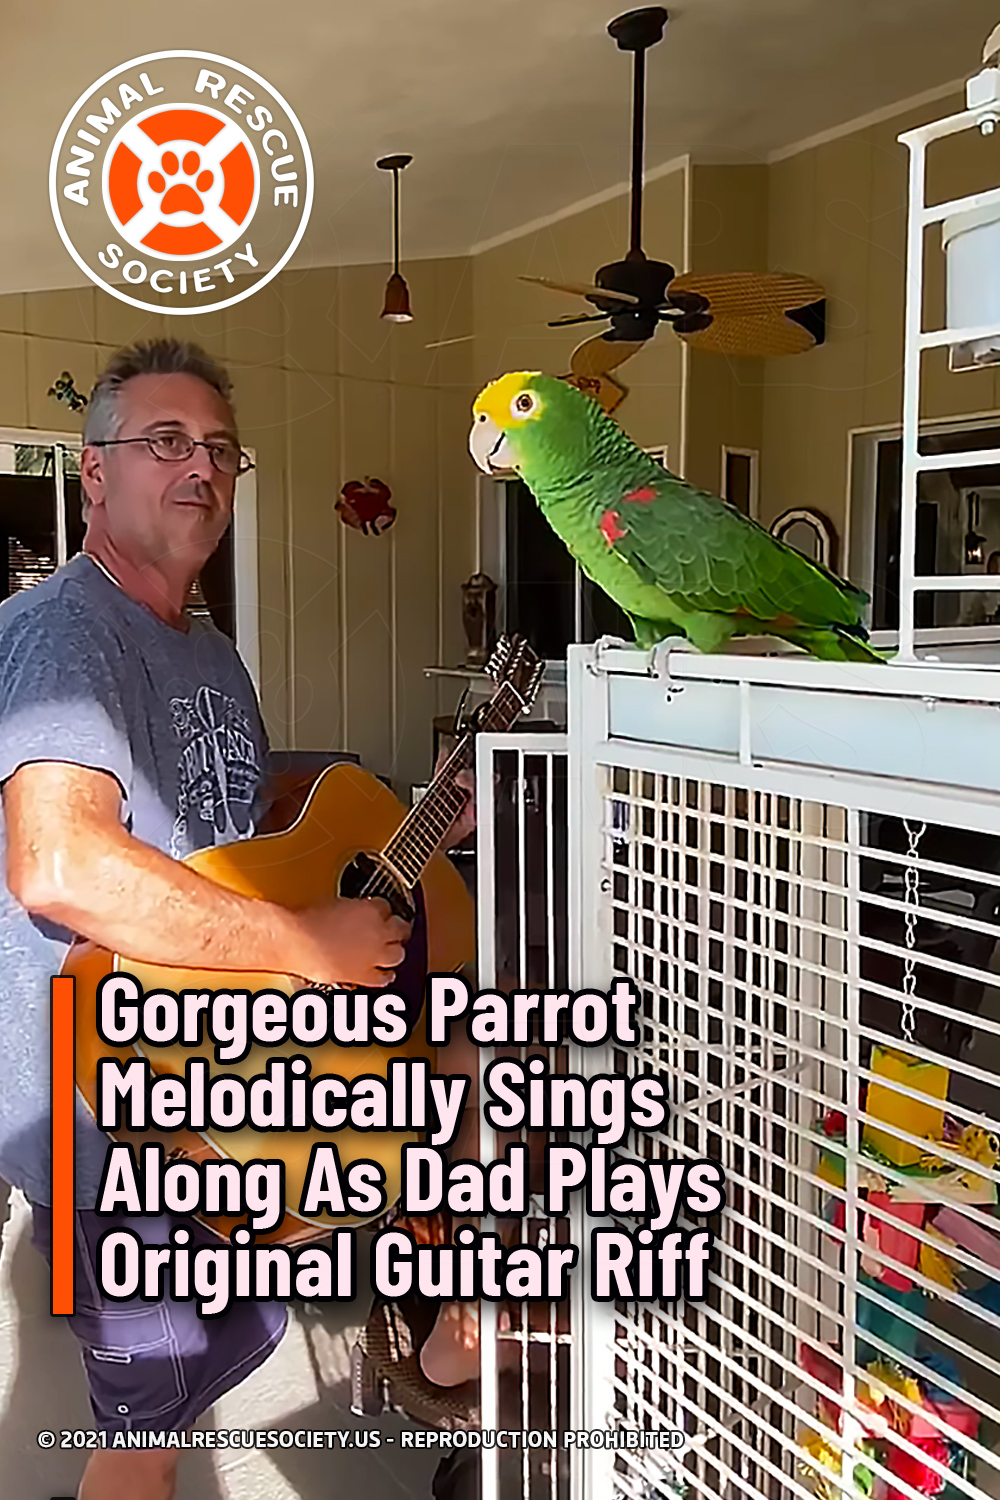 Gorgeous Parrot Melodically Sings Along As Dad Plays Original Guitar Riff